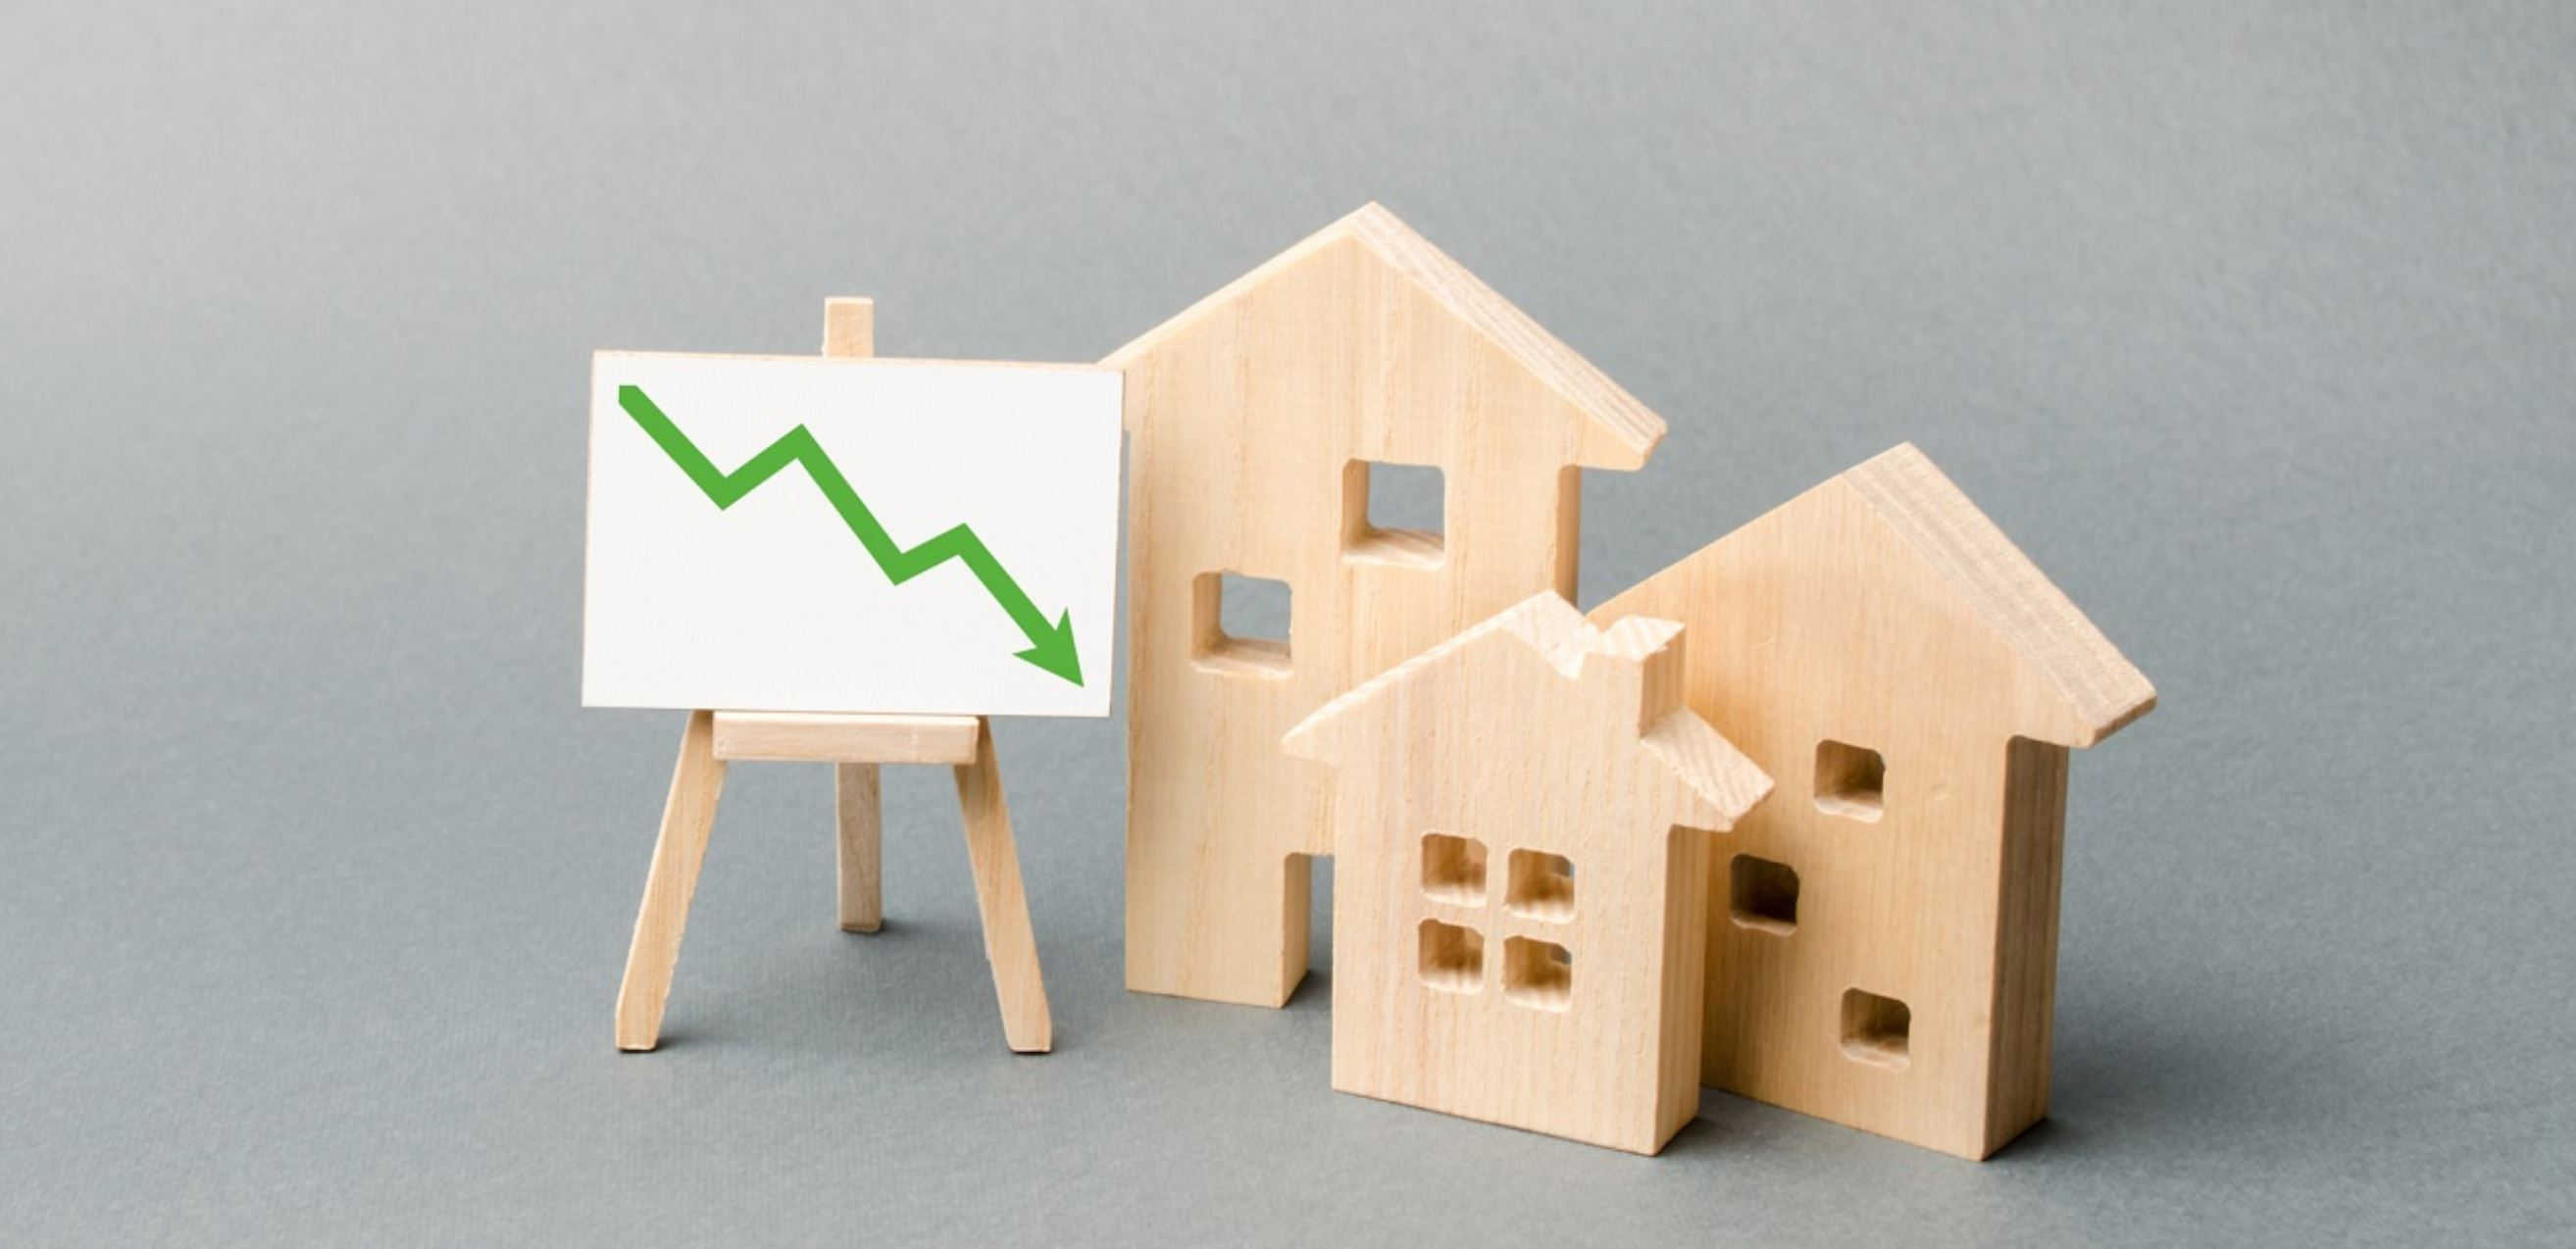 Realtor Magazine 2021 06 03 Surging Homeprices are set for a cooldown since going through the China COVID-19 Coronavirus plandemic Hoey Team exp Realty